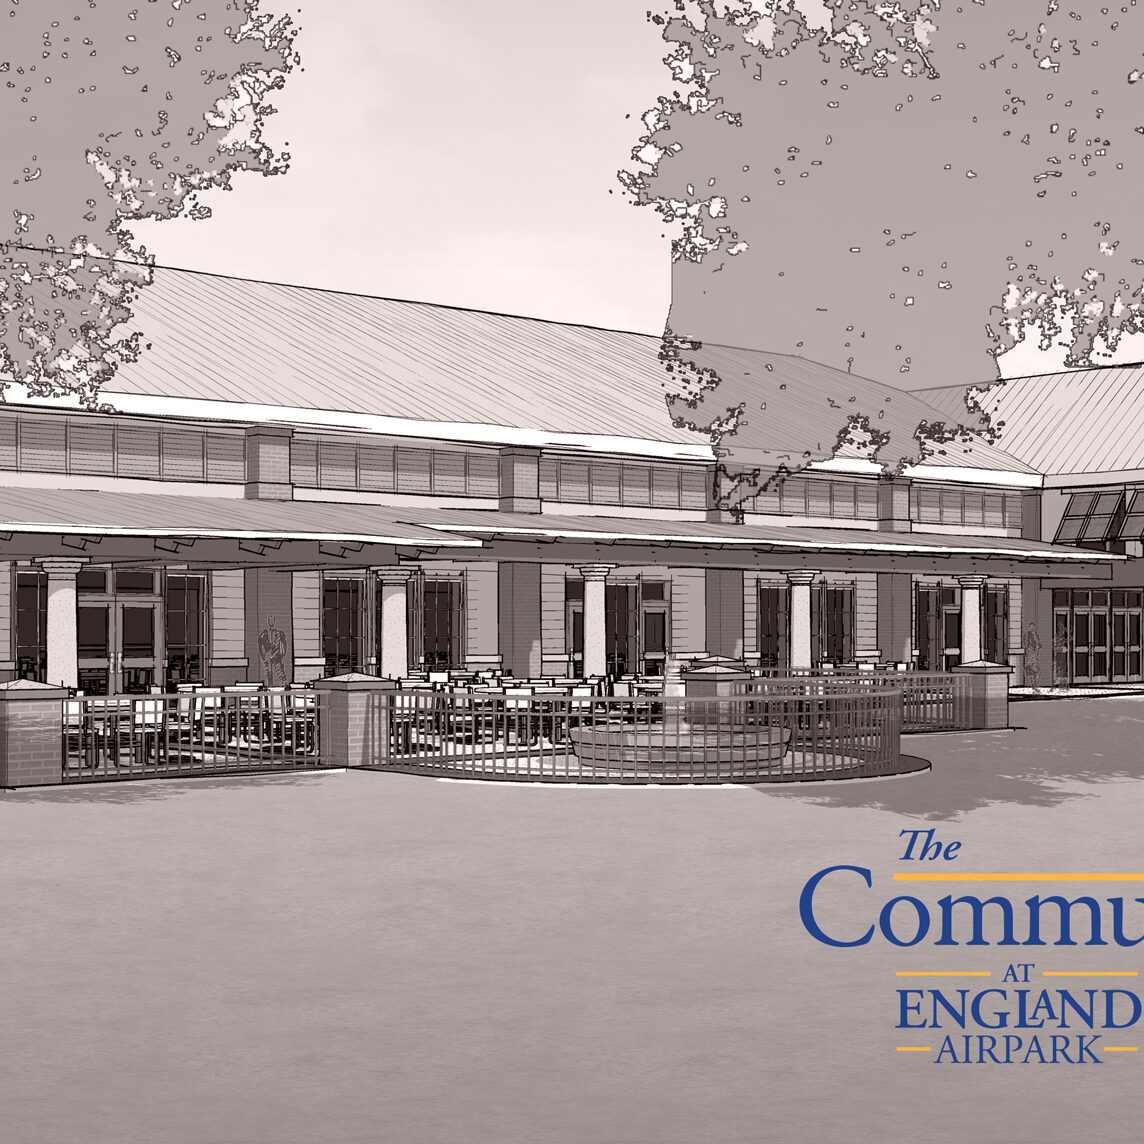 Community Center at England Airpark